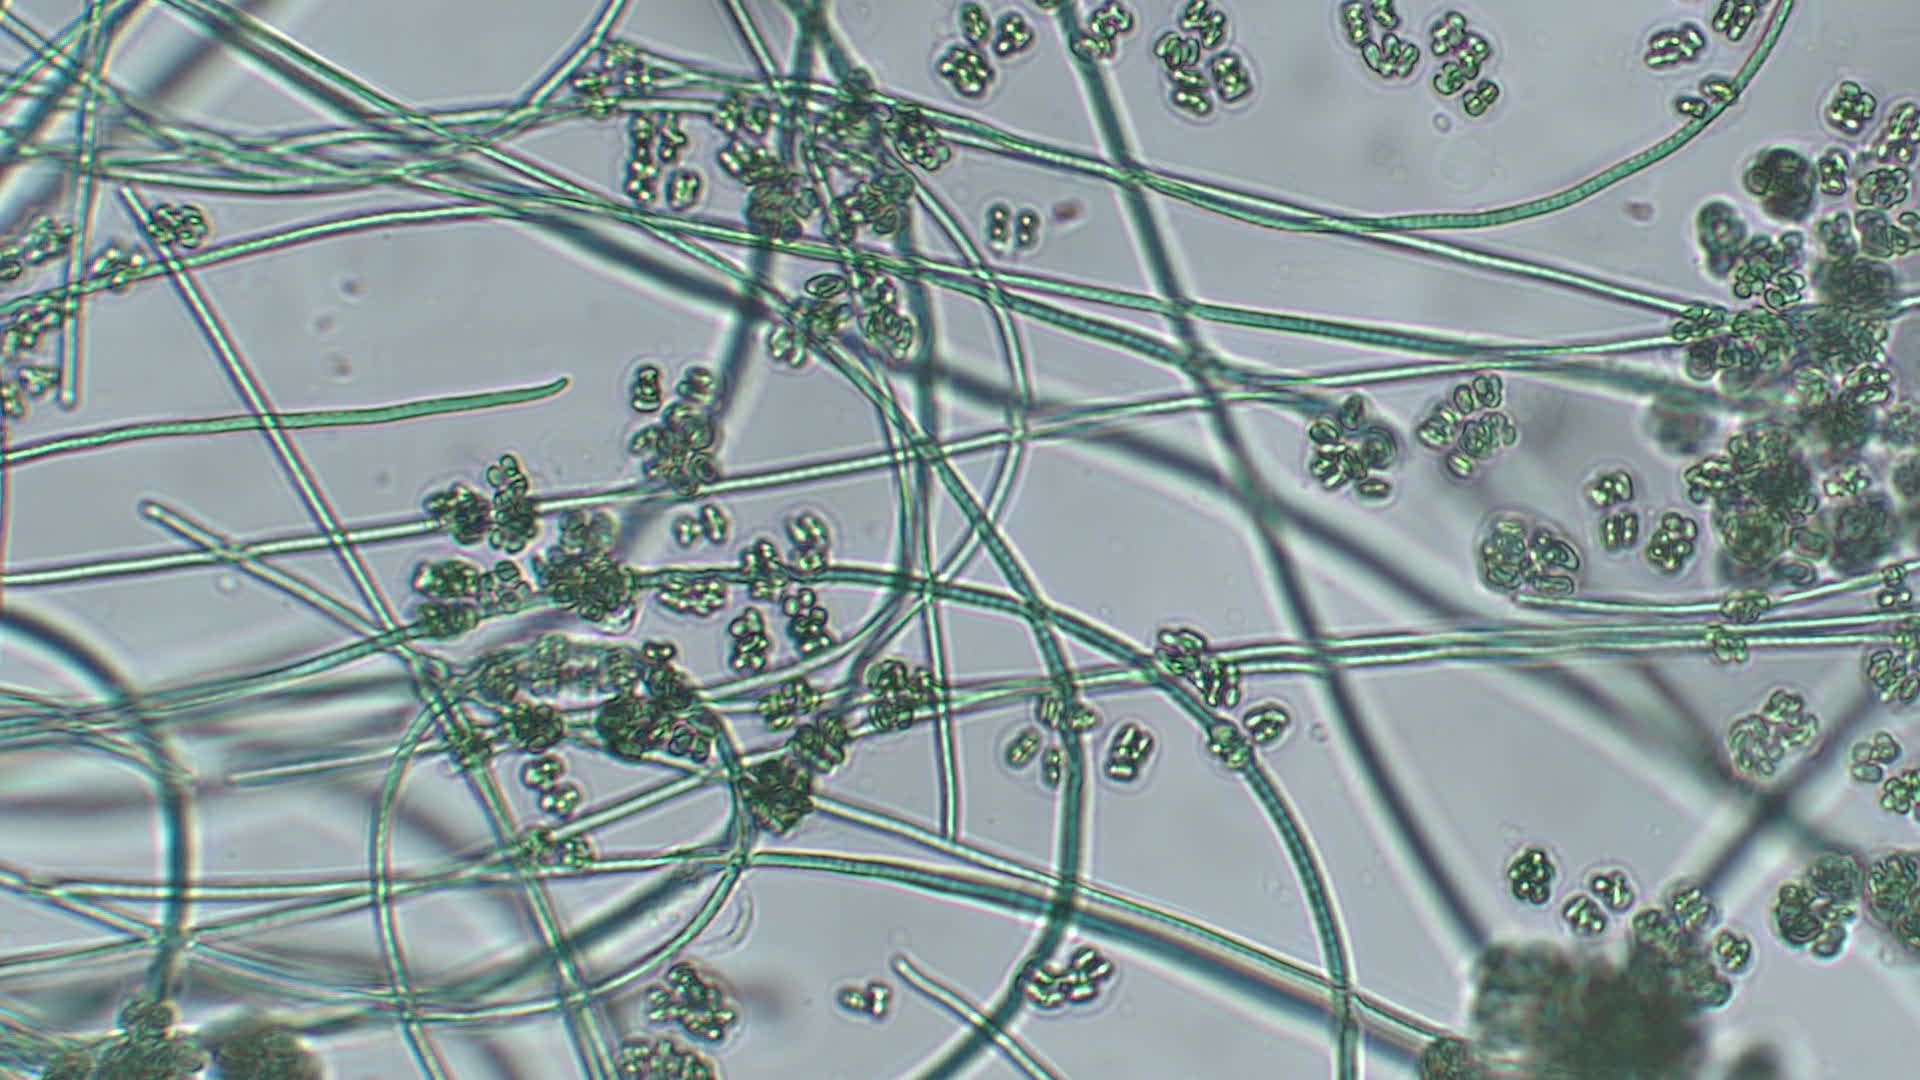 Video: The Cyanobacteria: Oscillatoria and Gleocapsa